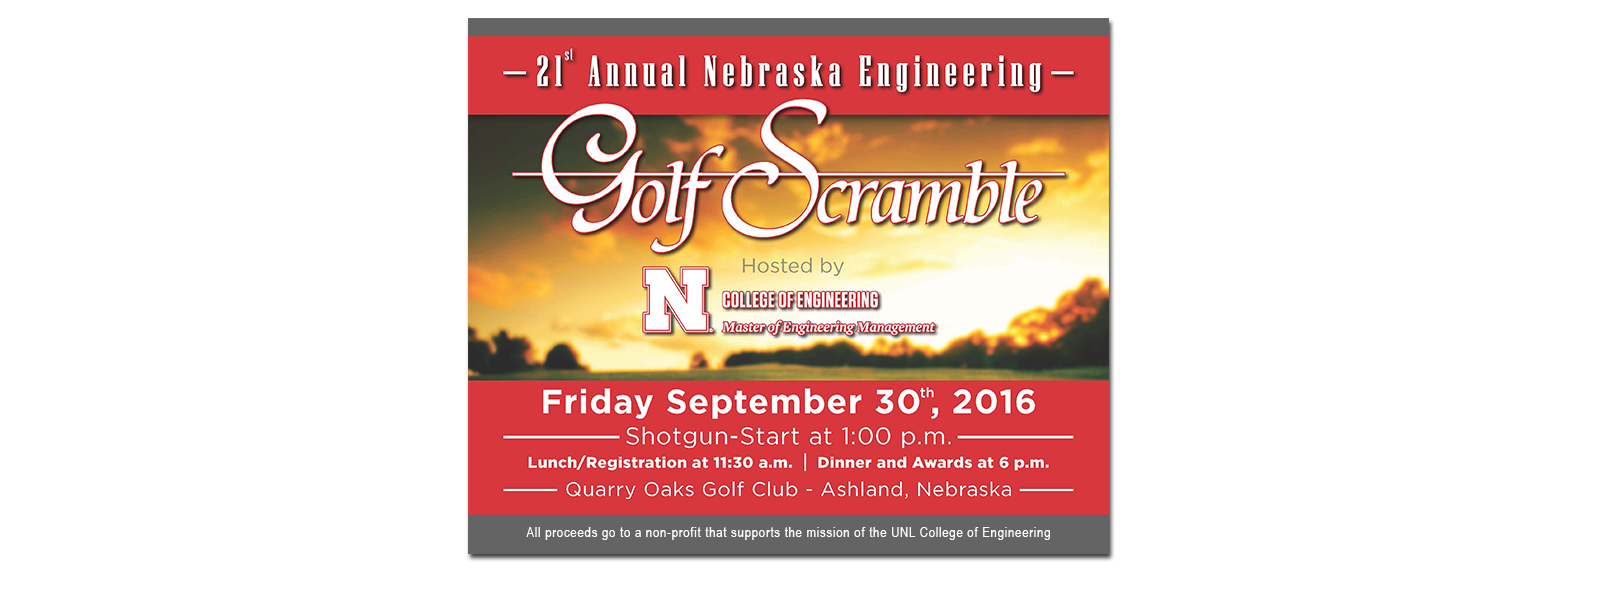 UNL College of Engineering Annual Golf Outing